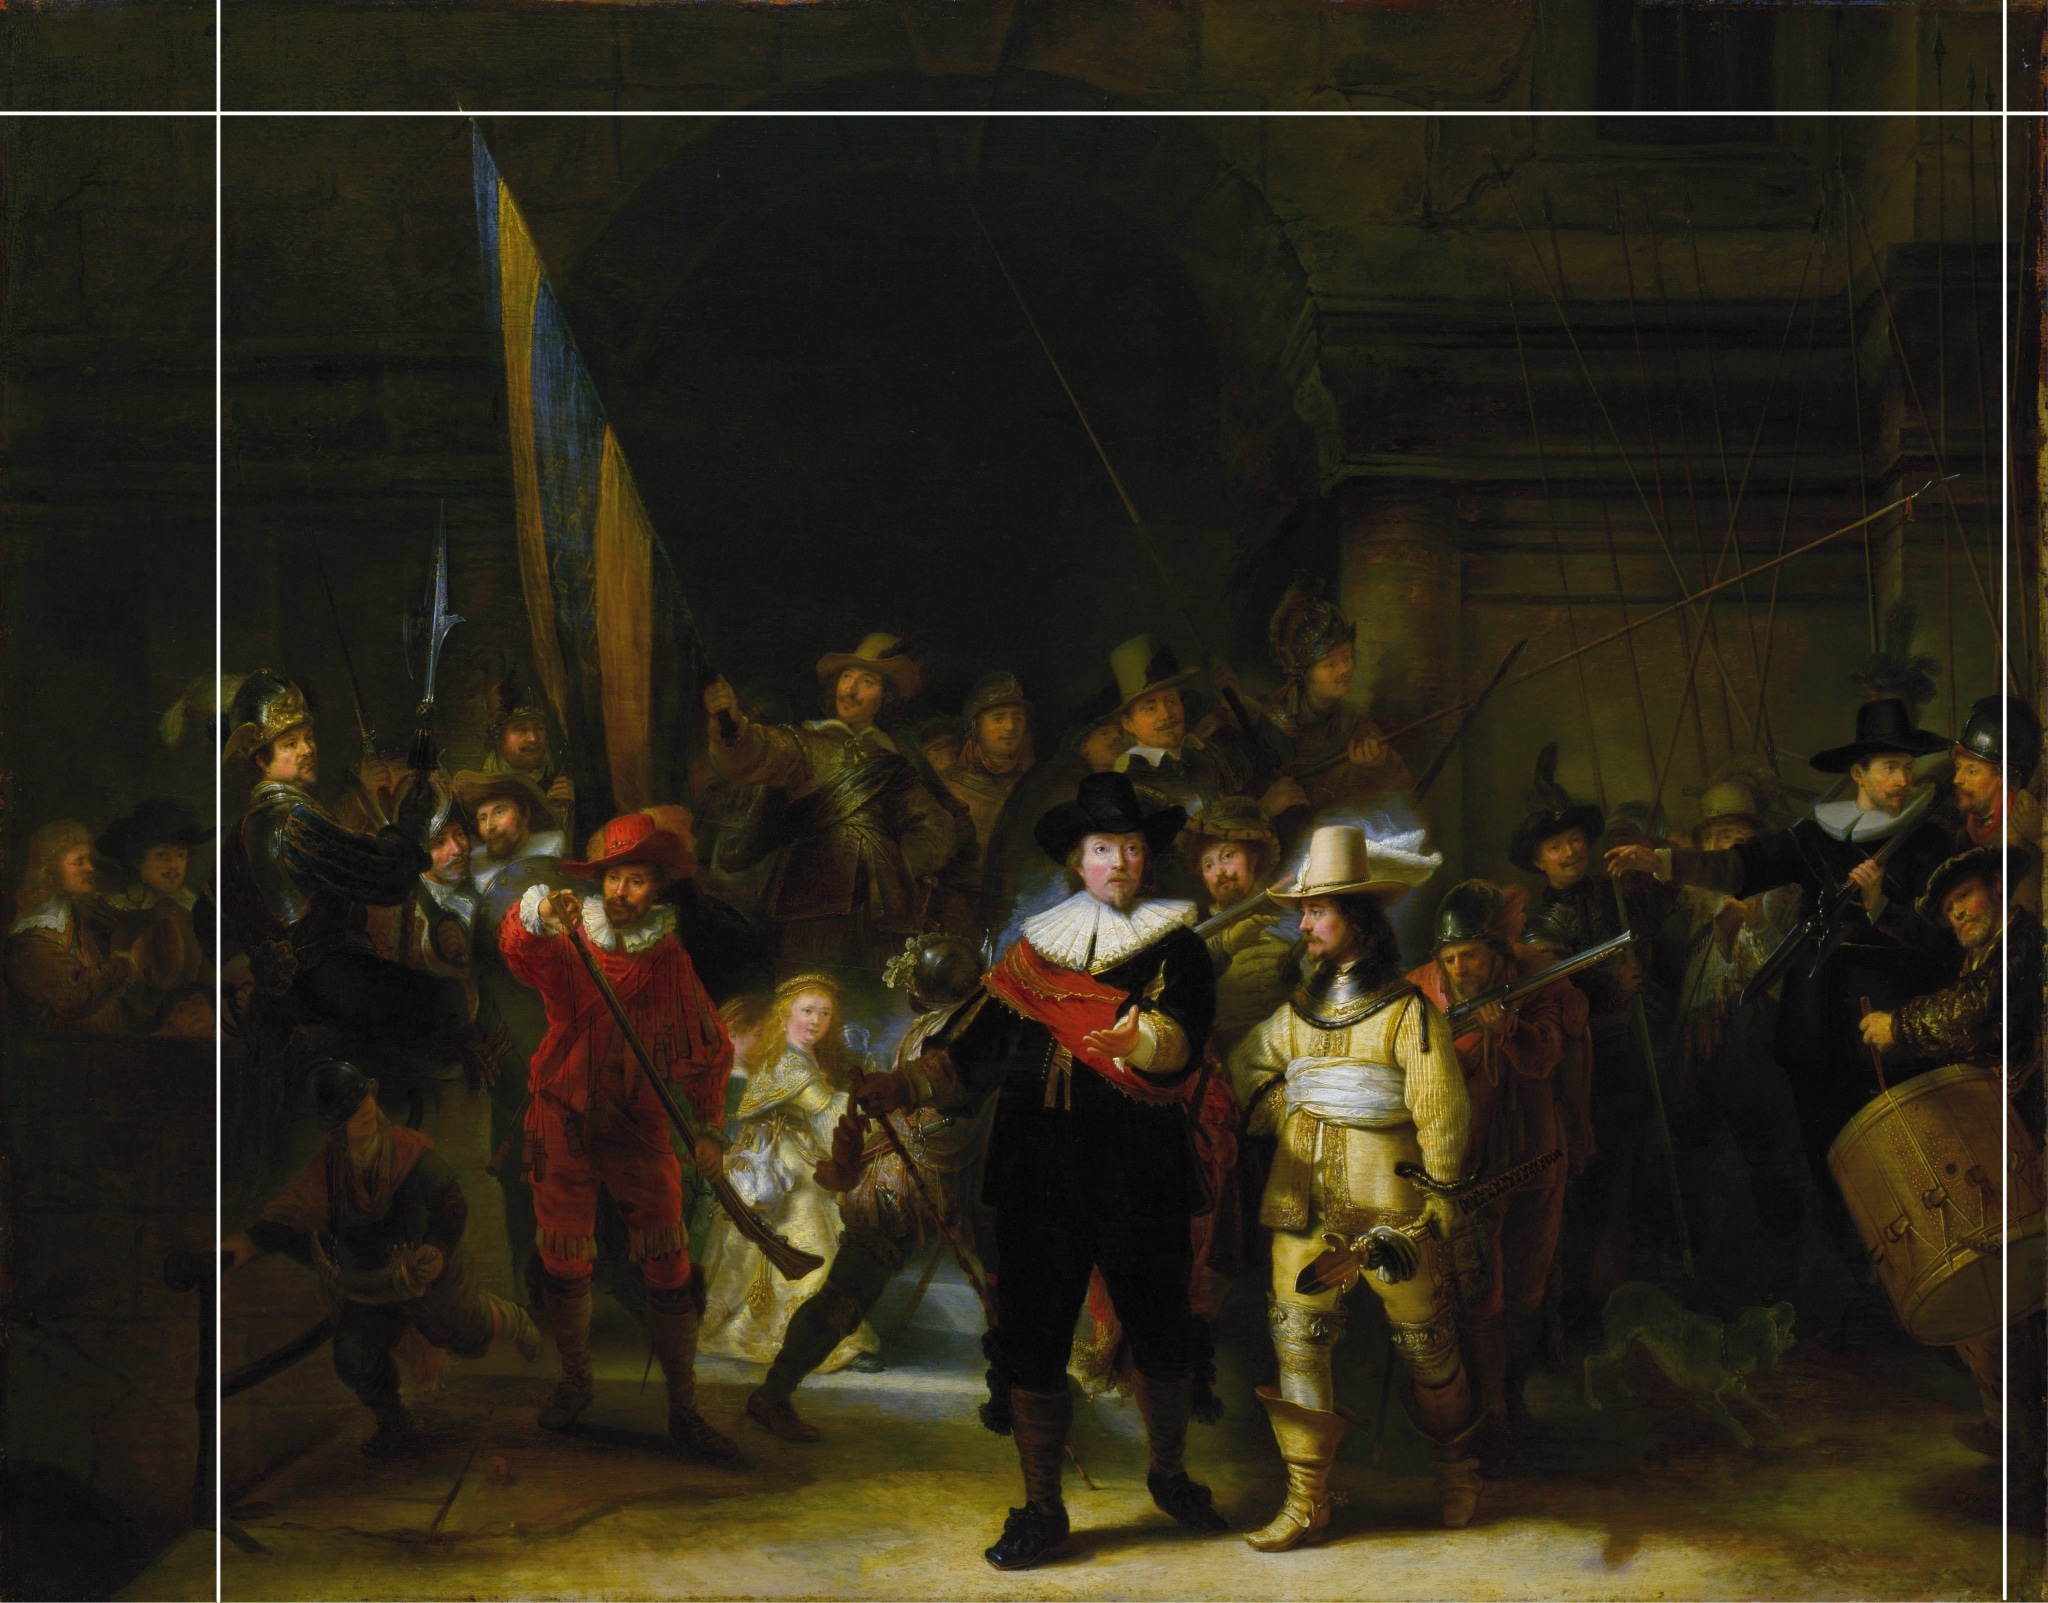 Copy of the Night Watch by Gerrit Lundens